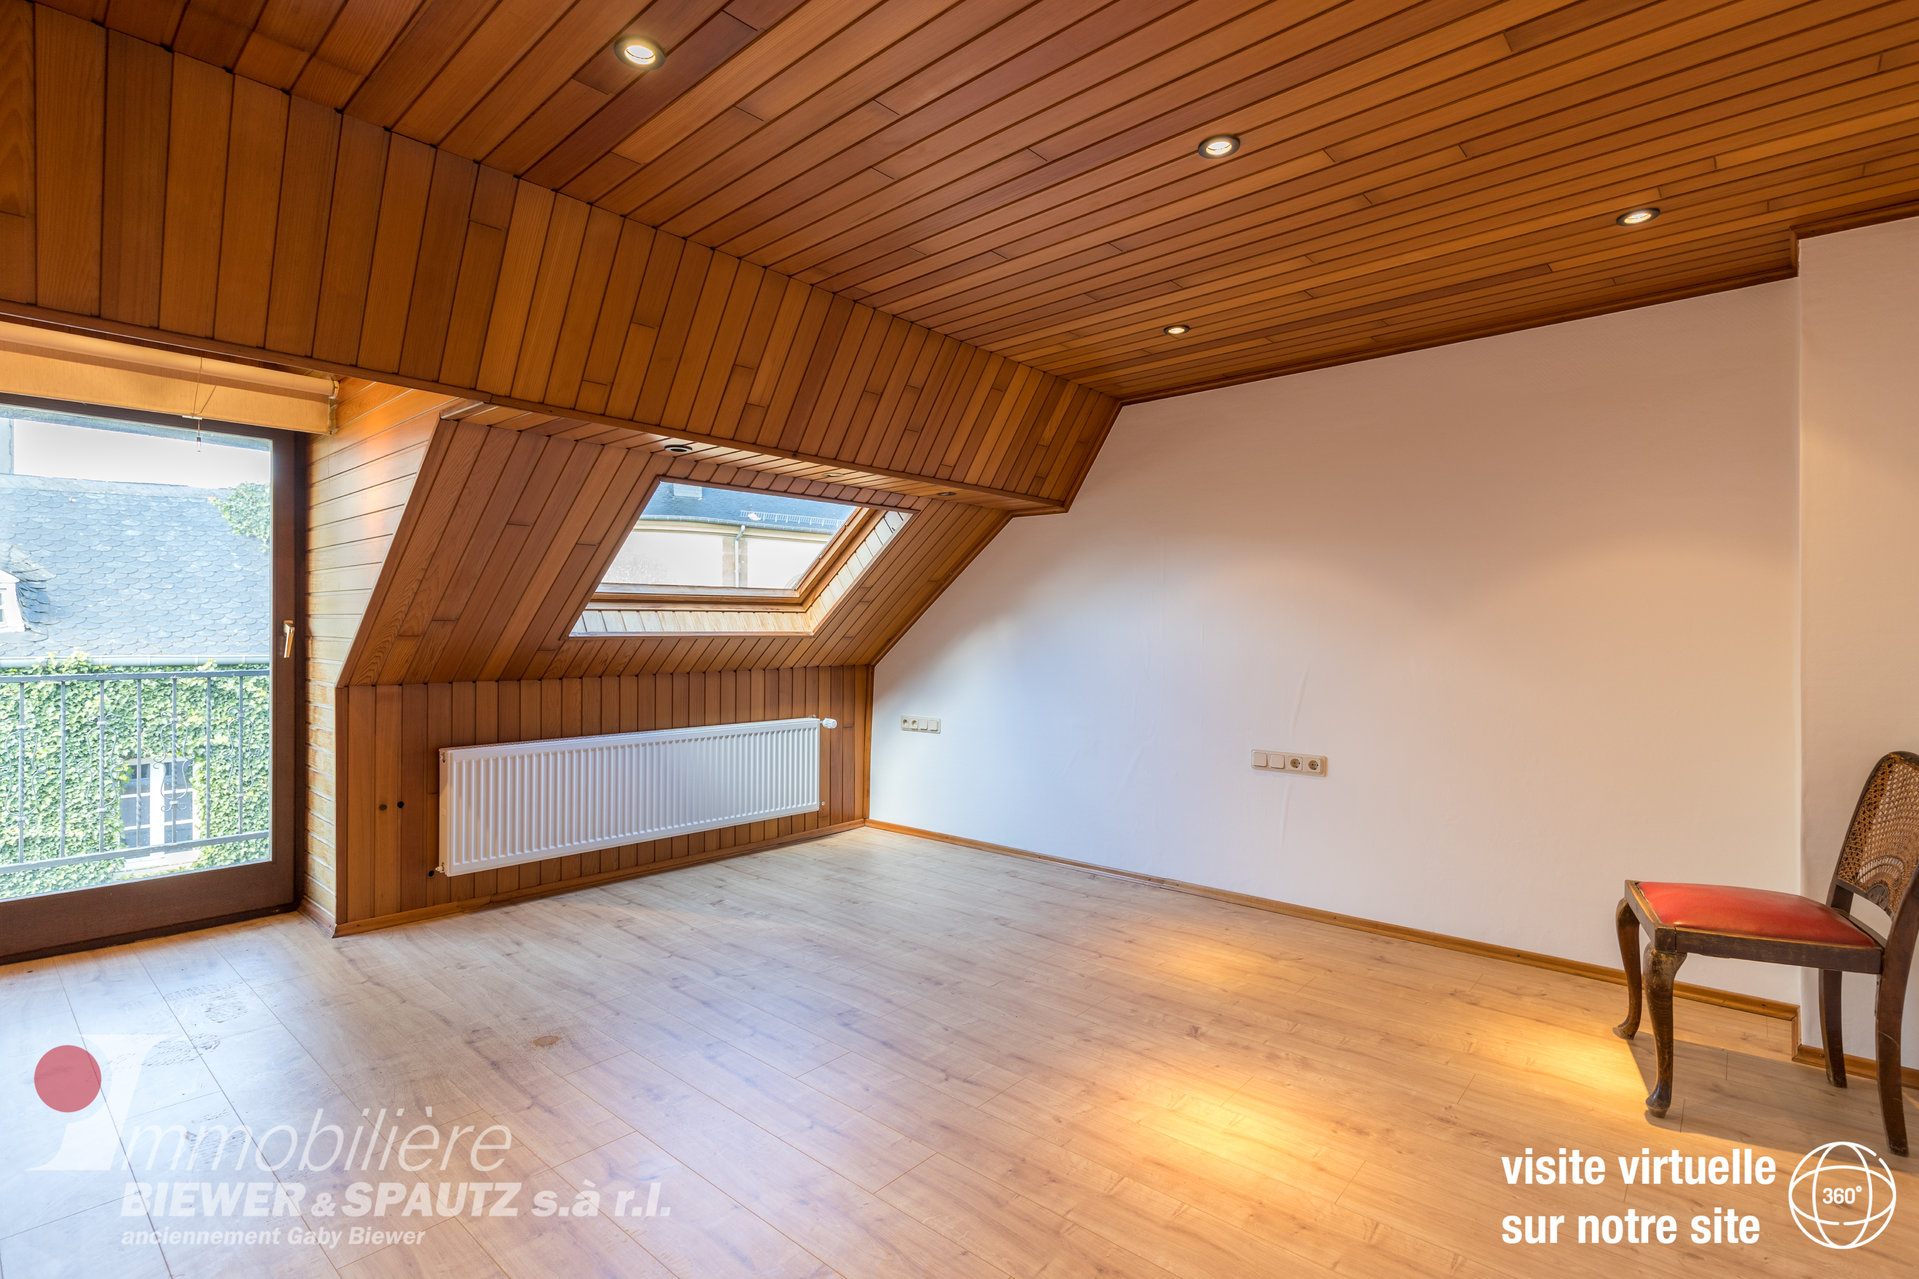 FOR RENT - Semi-detached house / old farm with 8 bedrooms in Berdorf